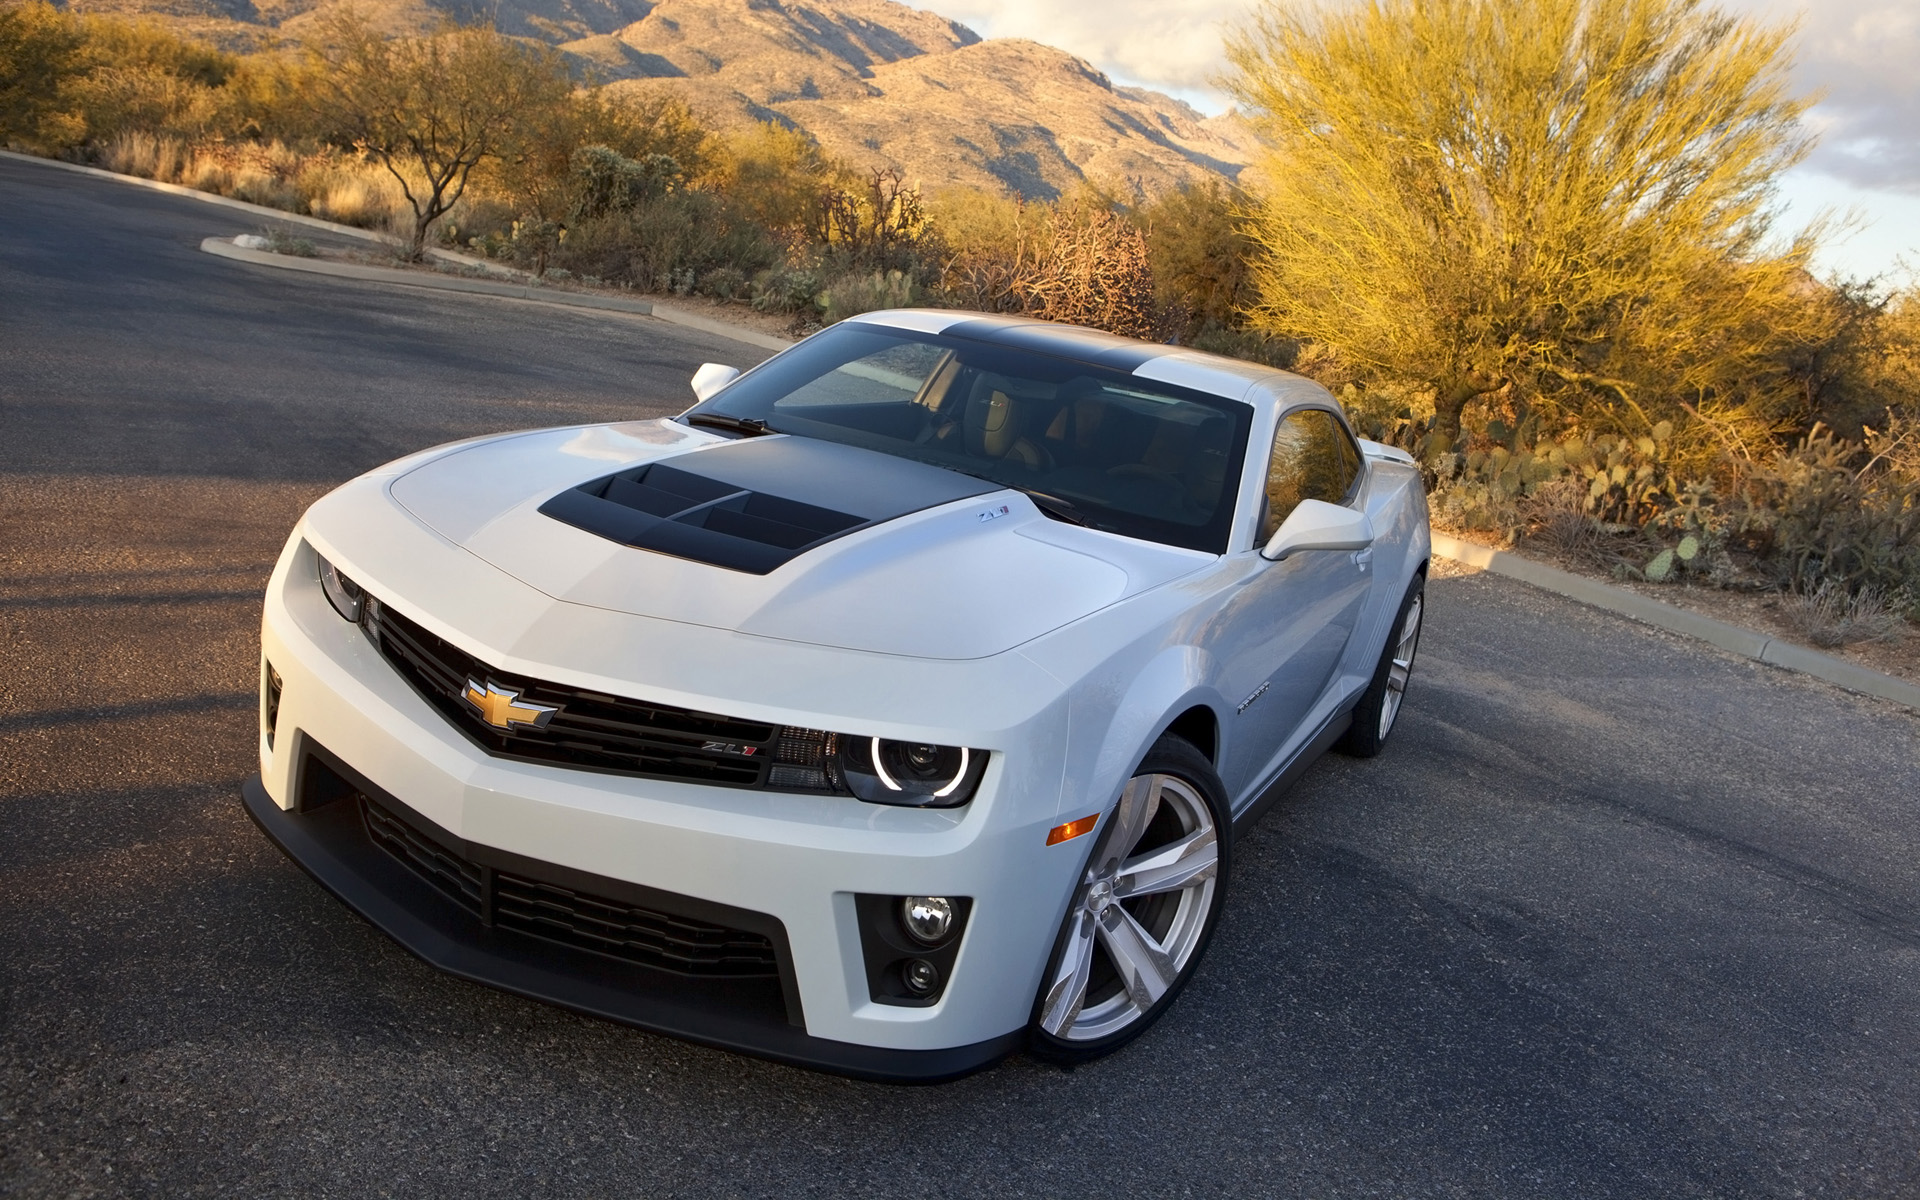 2014 Chevrolet Camaro ZL1   Coupe   Static   2   1920x1200   Wallpaper 1920x1200